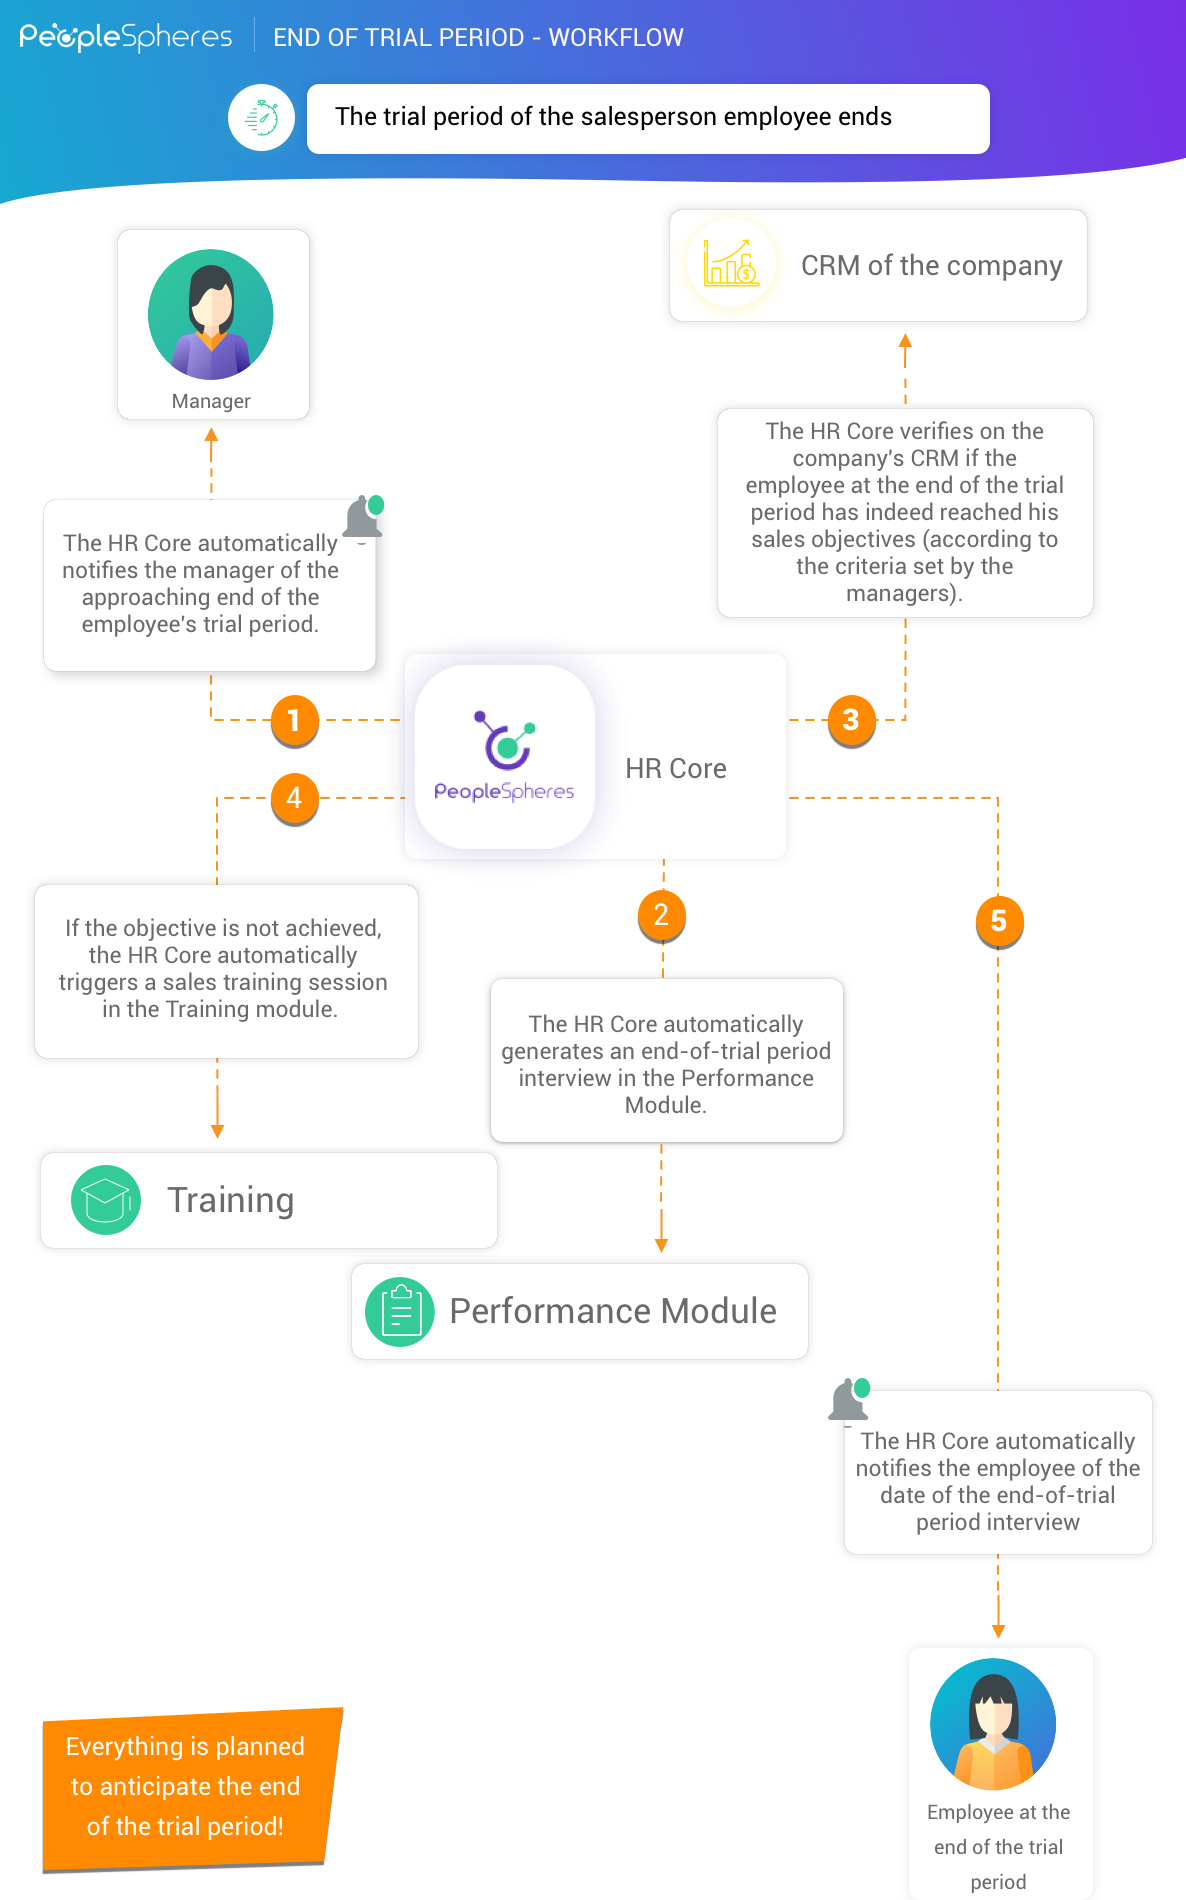 End of trial workflow